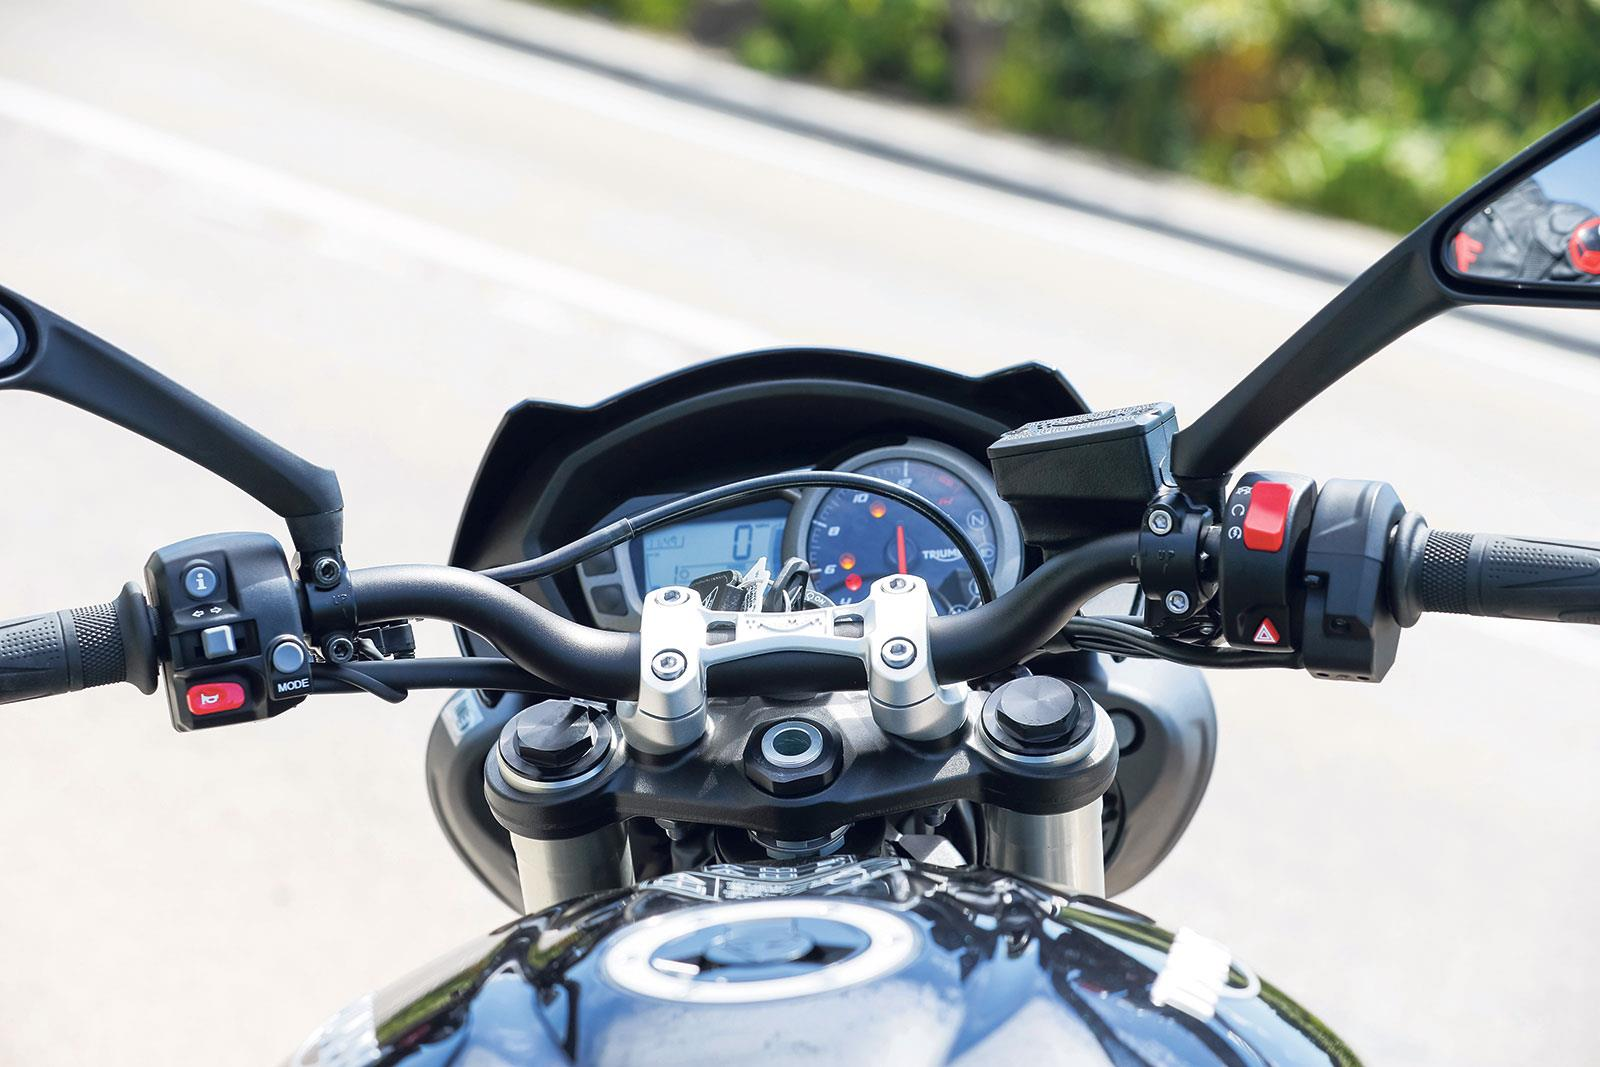 triumph street triple 765 s (2017-on) review | mcn